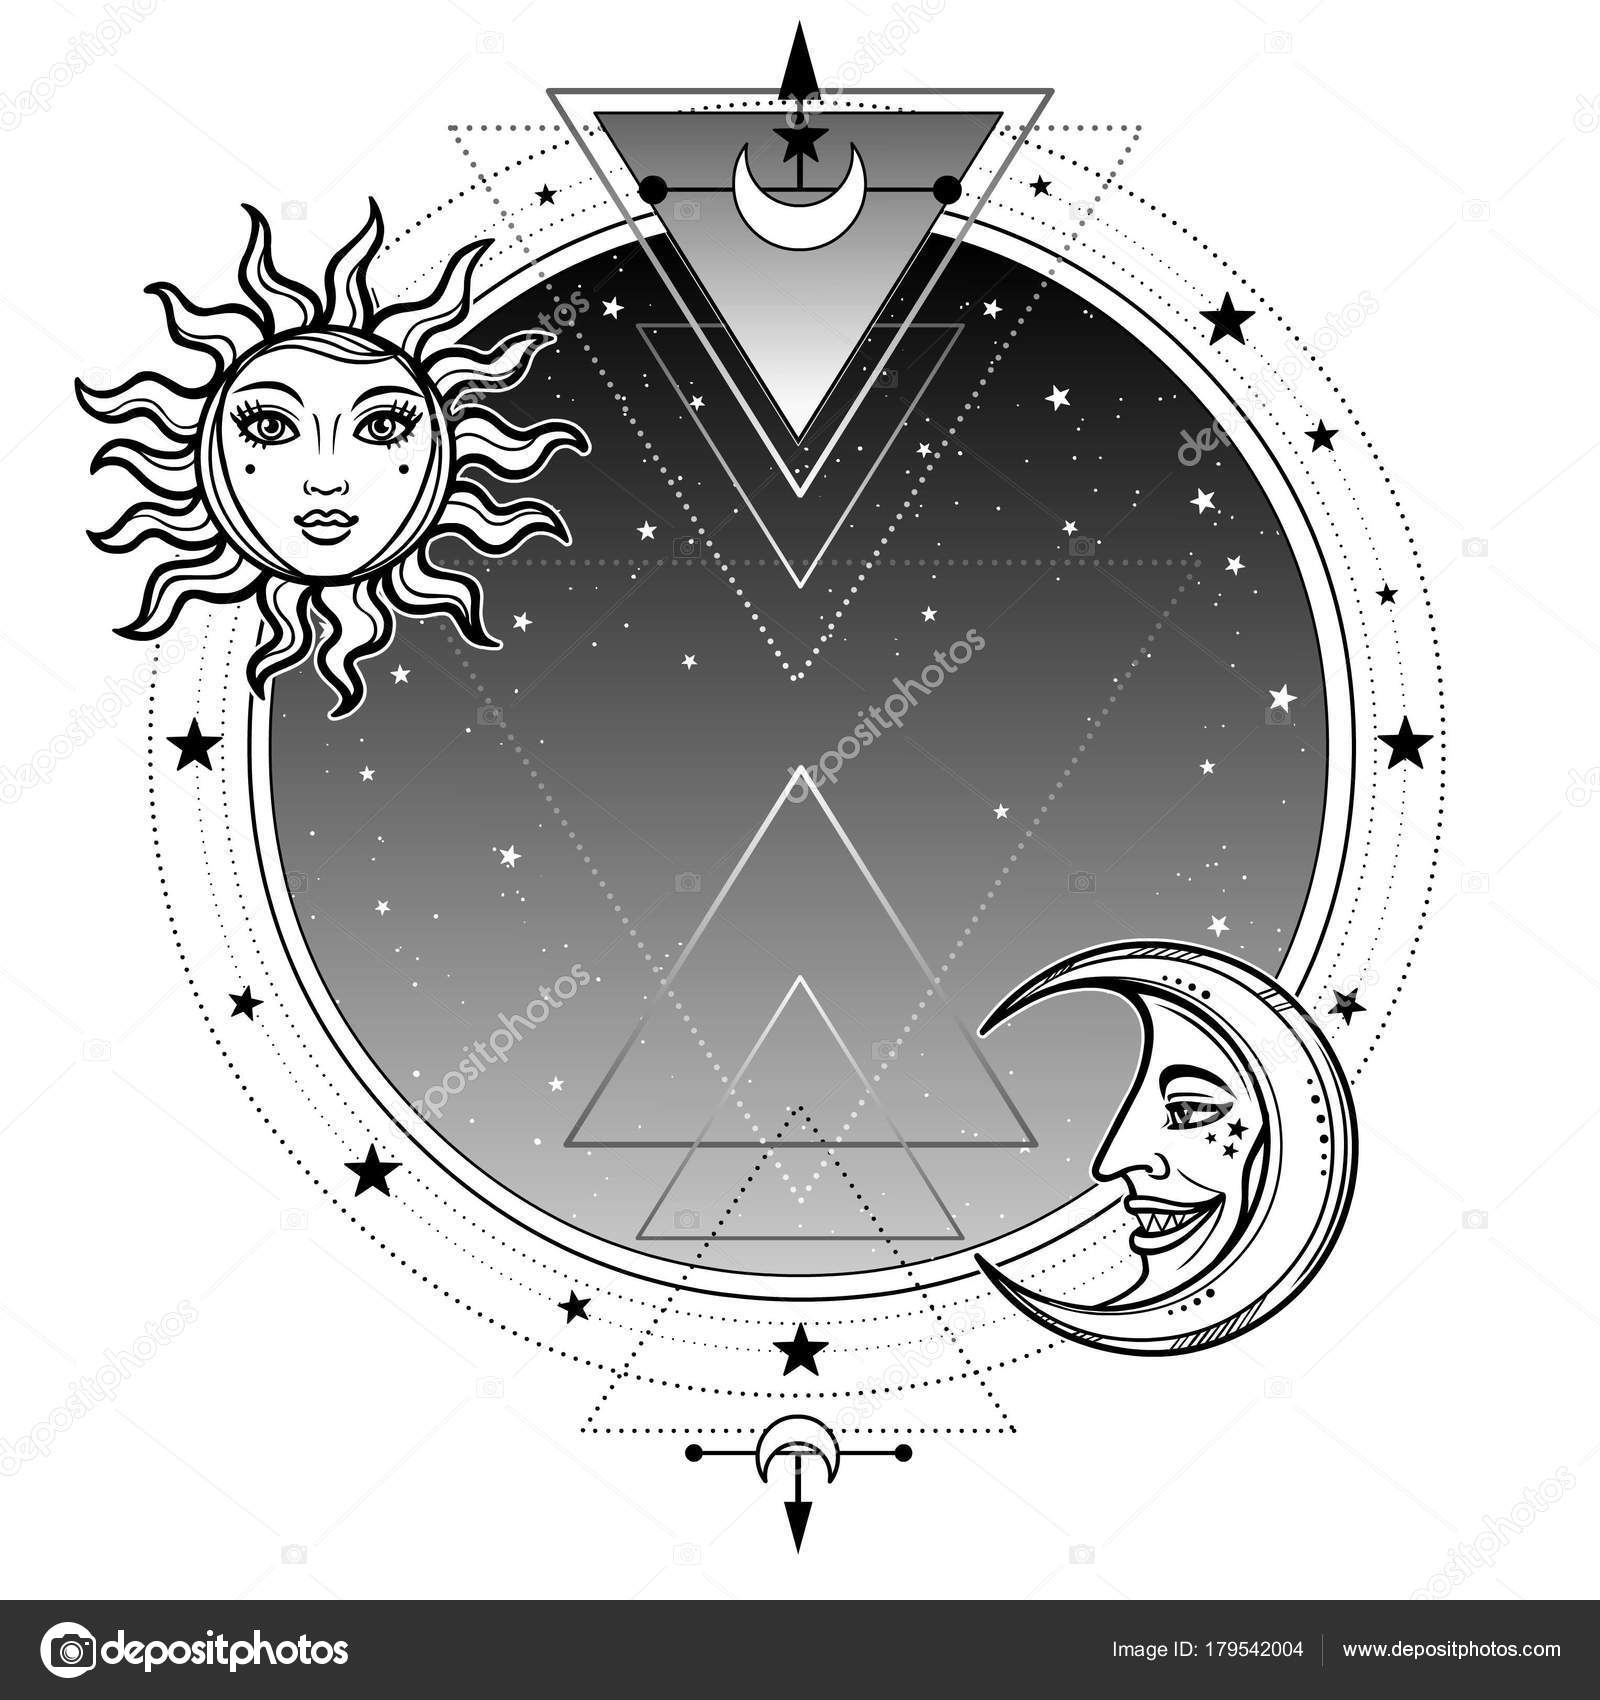 Monochrome background night star sky moon sun place text alchemy monochrome background night star sky moon sun place text alchemy stock vector biocorpaavc Images